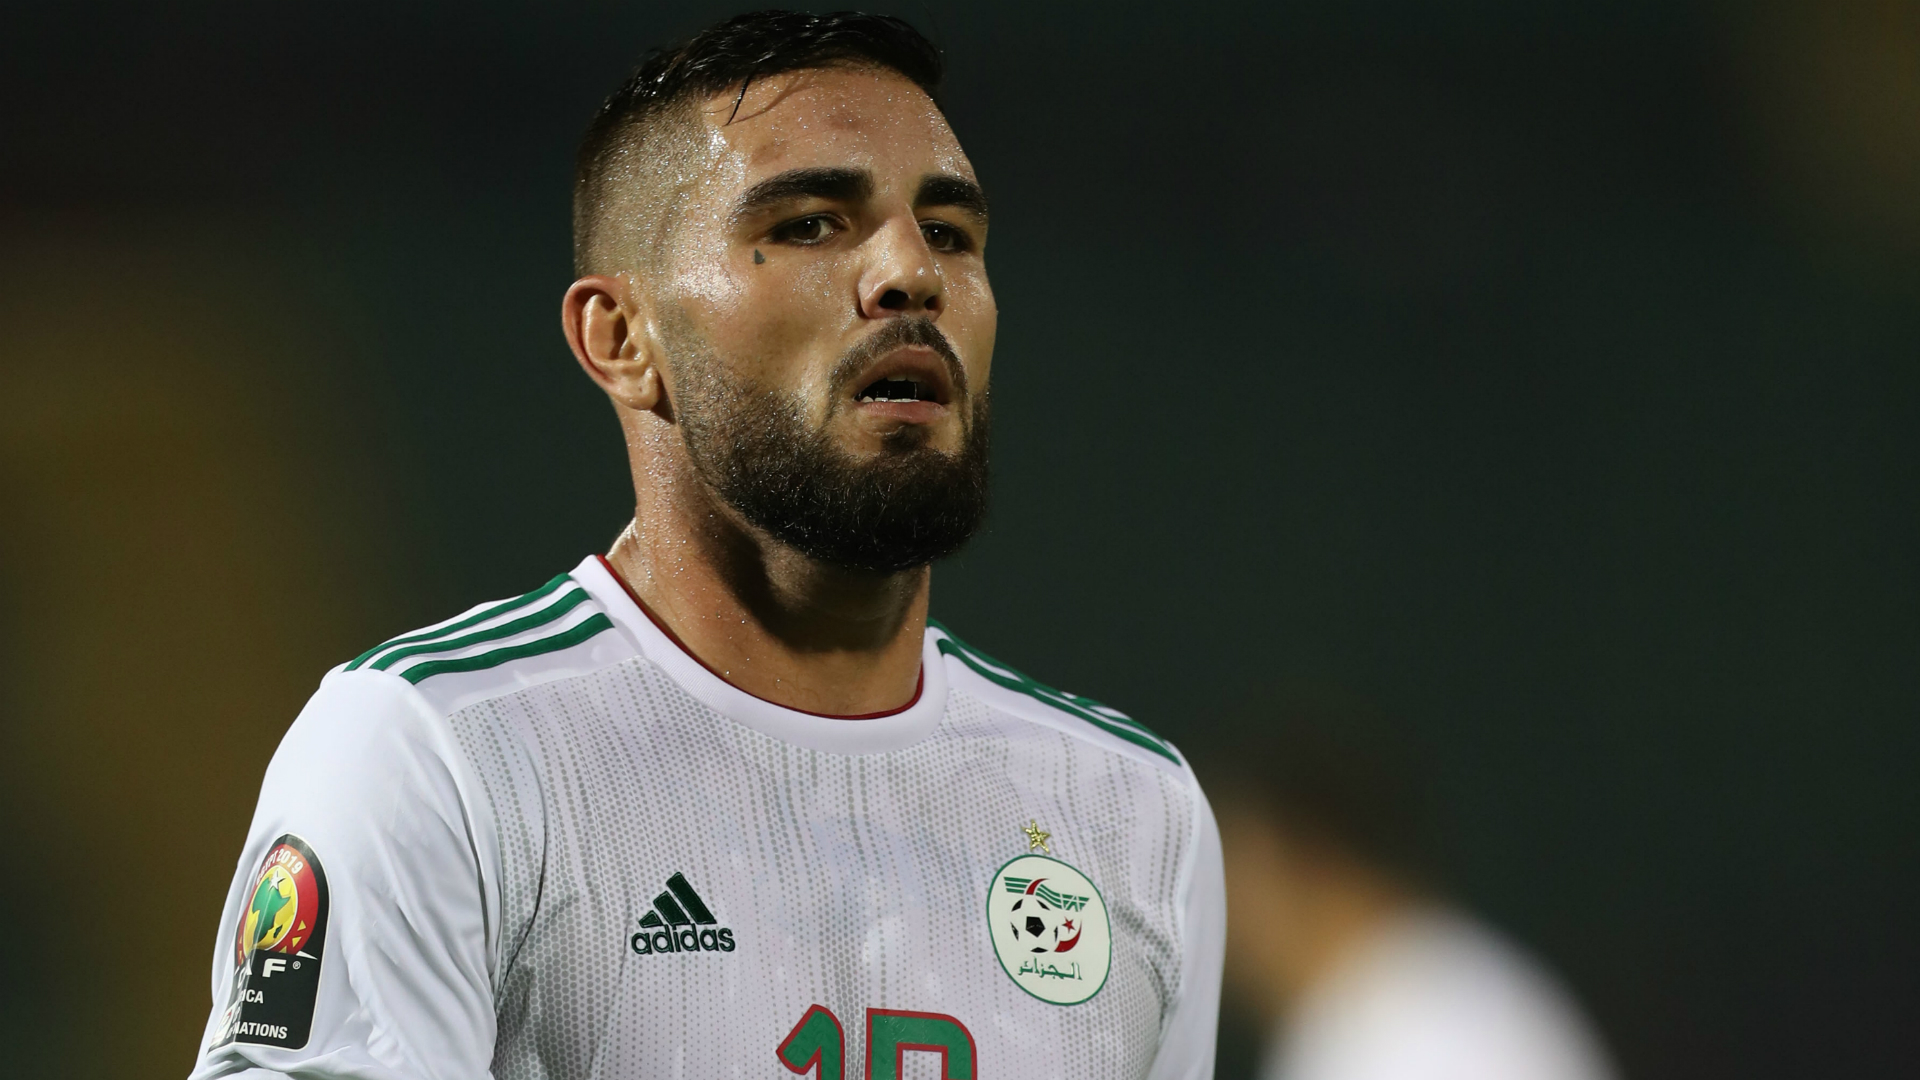 'I did not sleep overnight' - Montpellier star Delort on fairy-tale Afcon with Algeria